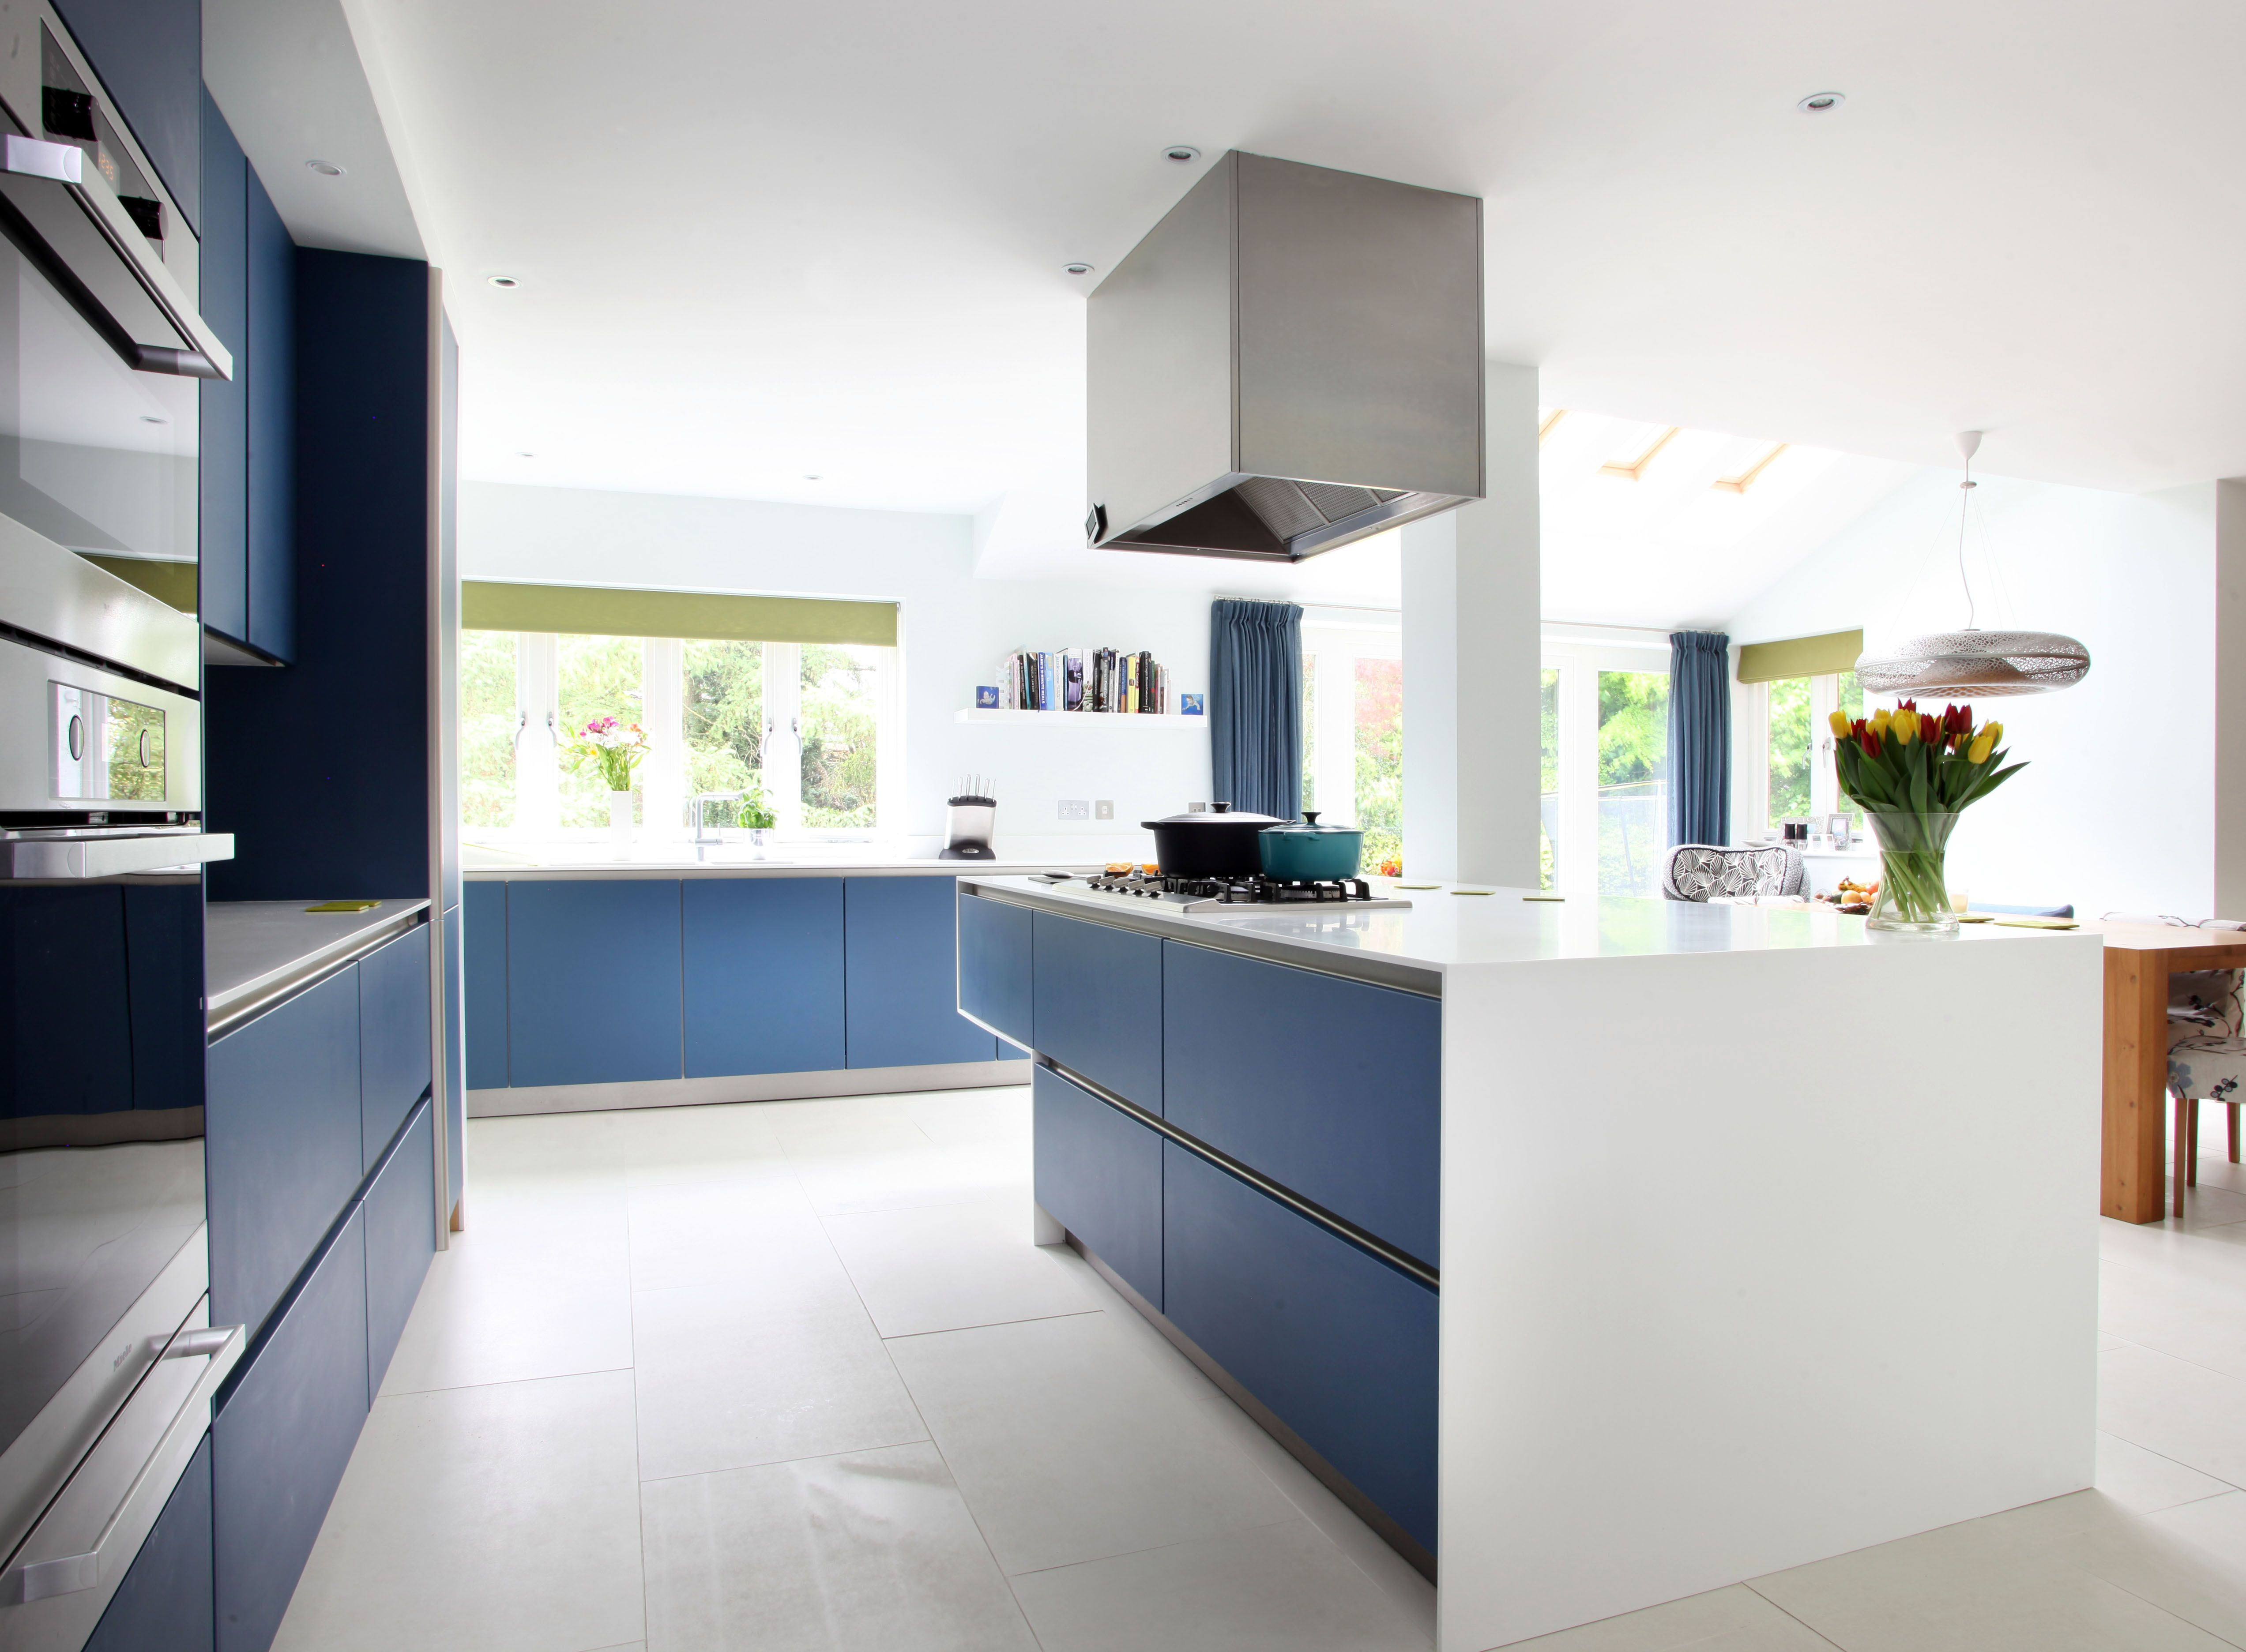 Amersham 2 Kitchen Design Drawing Room Blue Lacquer cabinetry ...